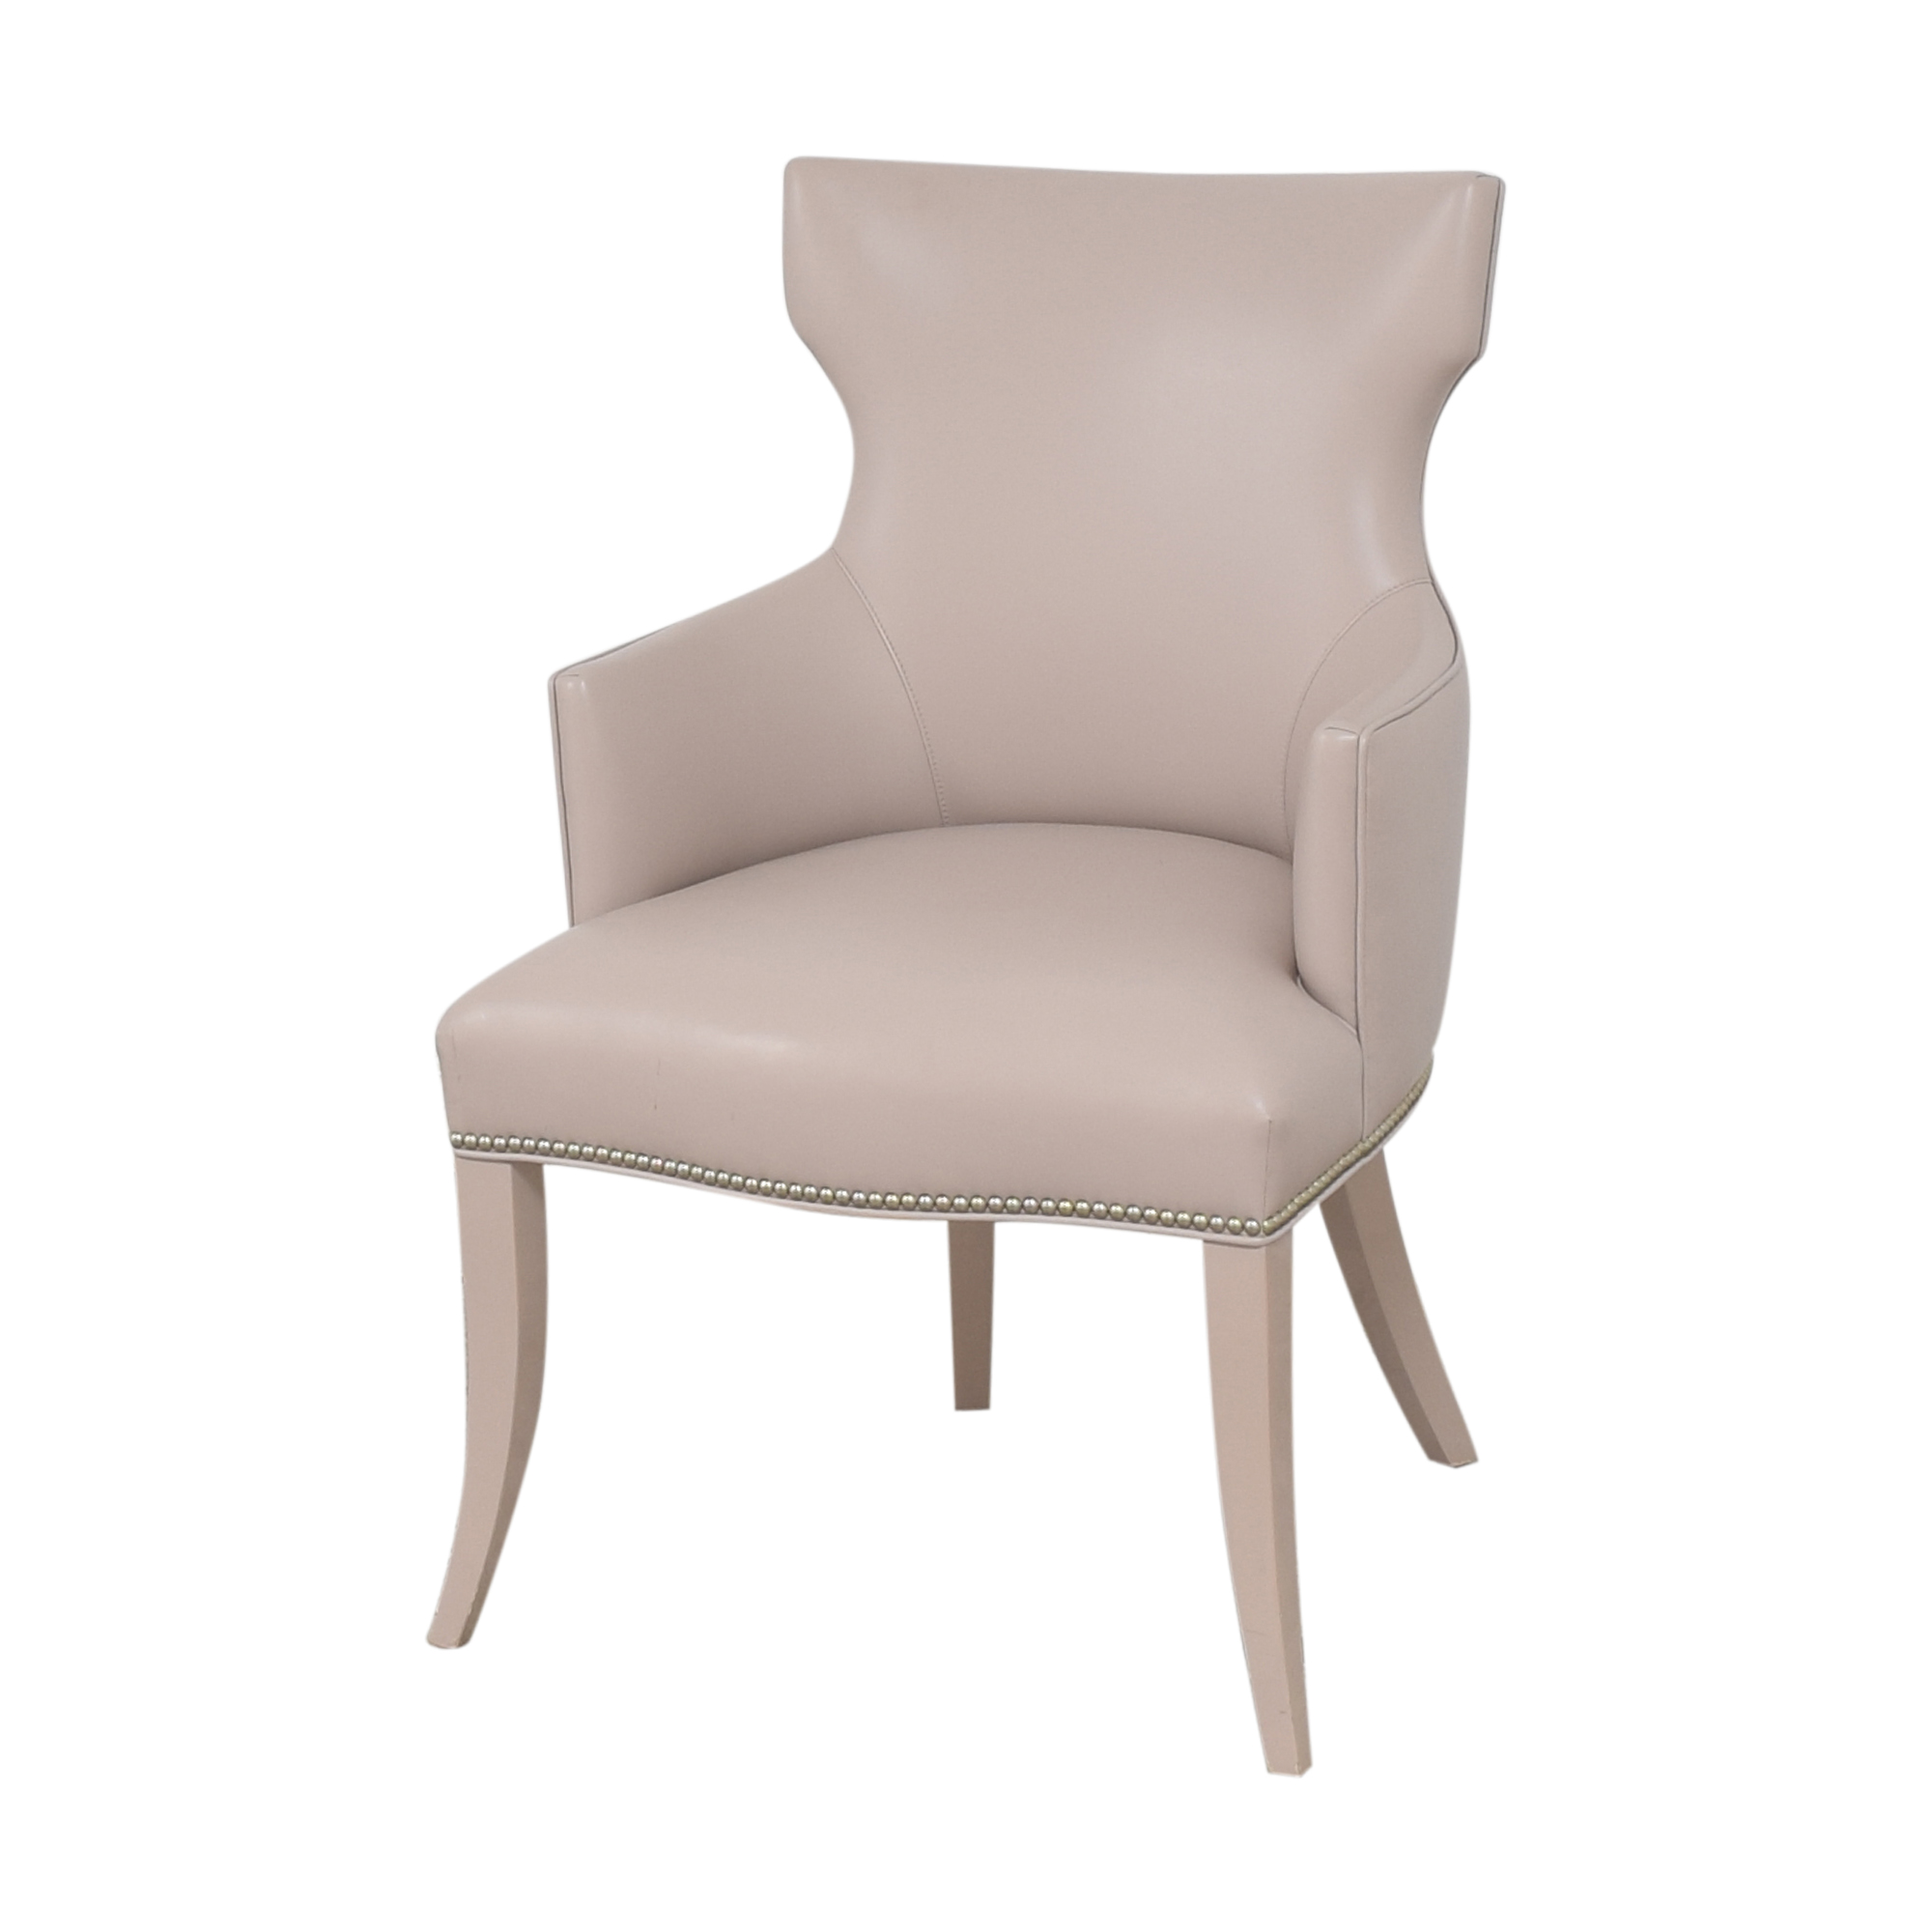 Artistic Frame Artistic Frame Custom Wing Back Dining Chairs on sale